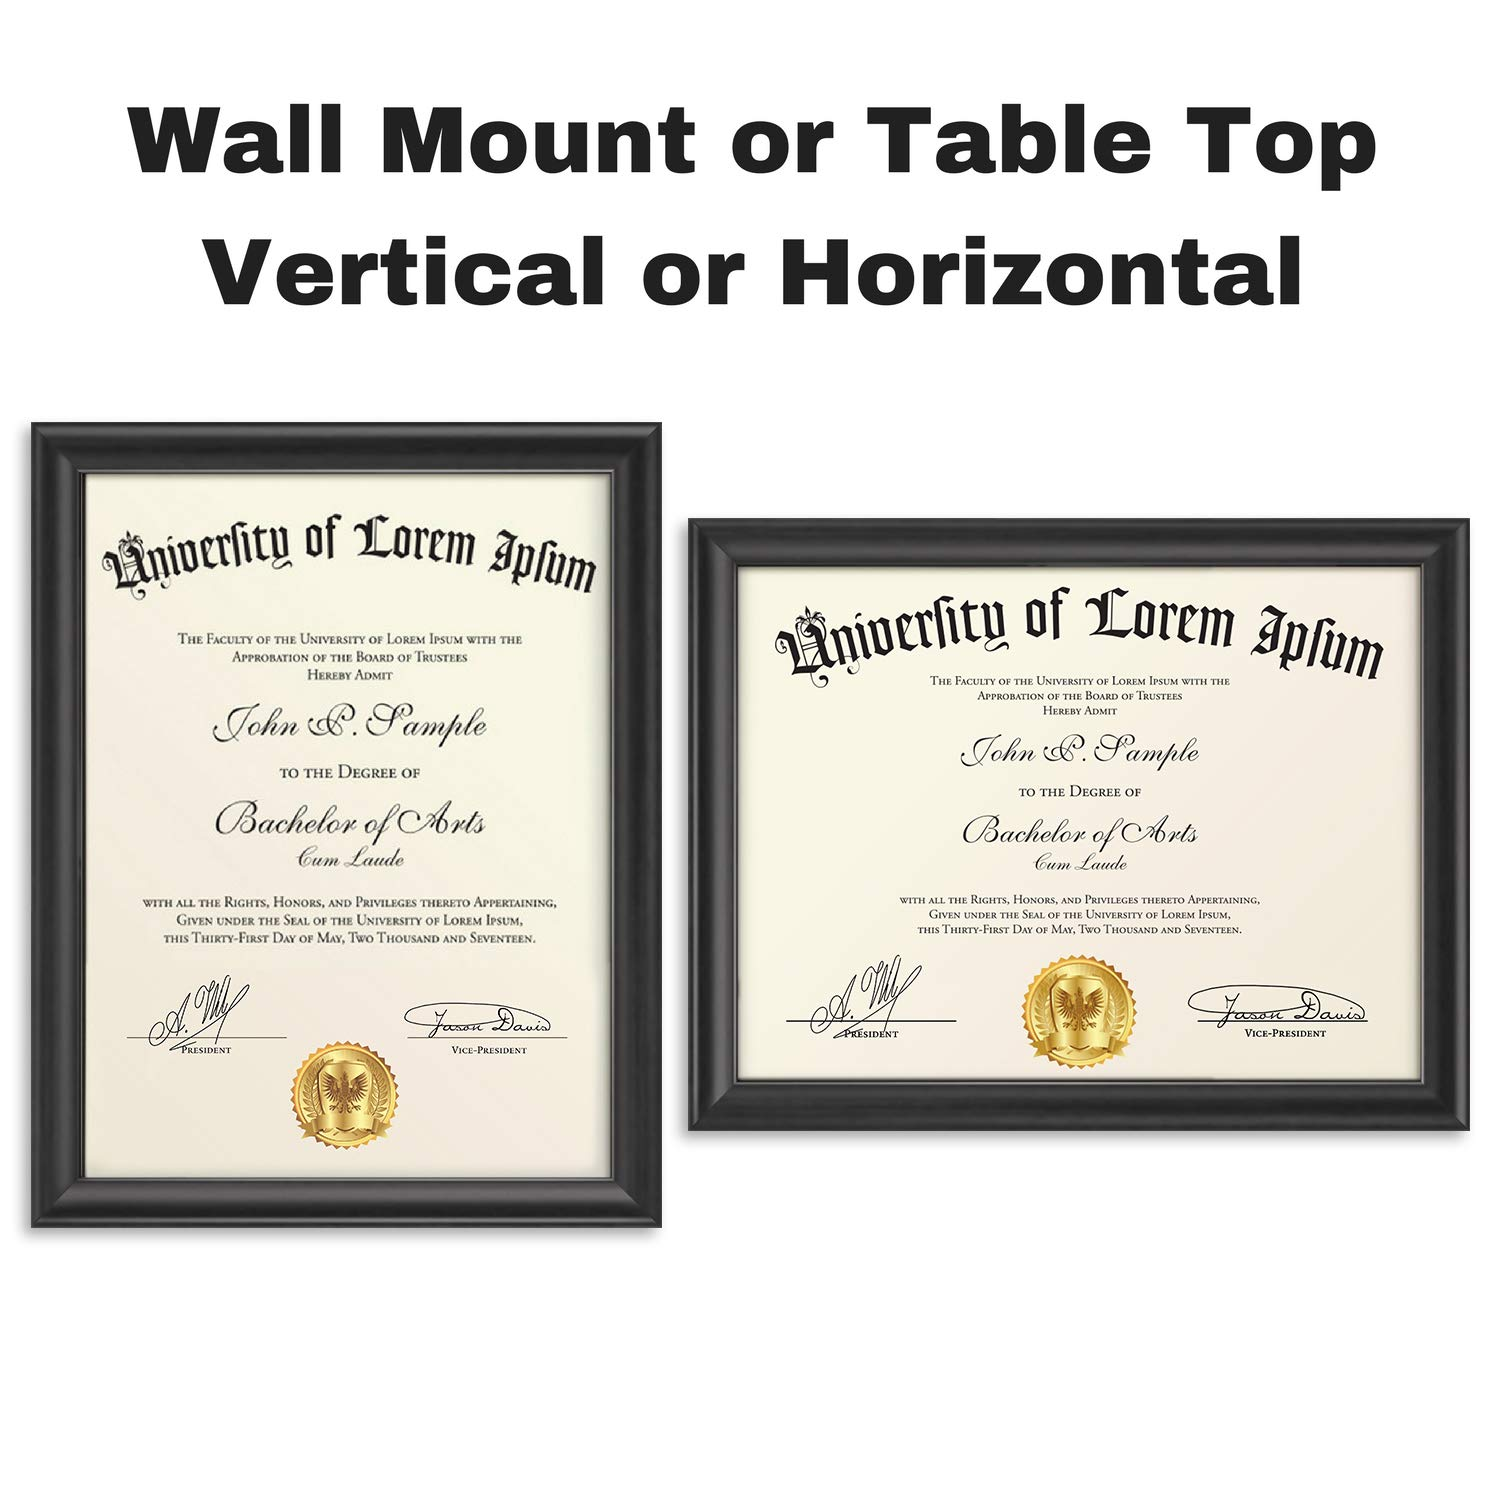 Icona Bay 8.5x11 Document Frame (12 Pack, Black), Black Certificate Frame 8.5 x 11, Composite Wood Diploma Frame for Walls or Tables, Set of 12 Lakeland Collection by Icona Bay (Image #3)